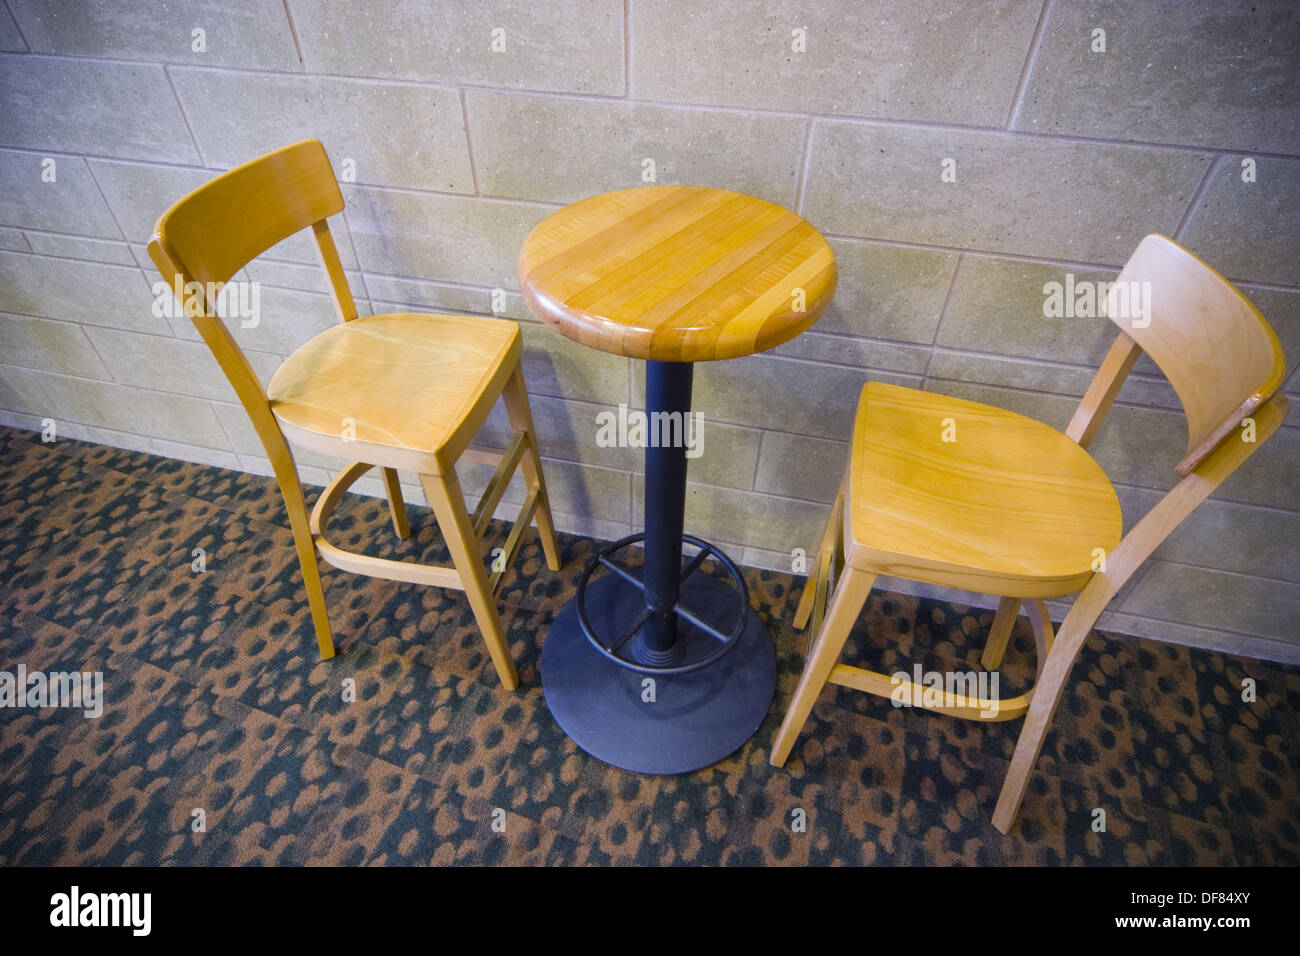 Table And Chairs In A College Lounge Stock Photo: 61030451 ...